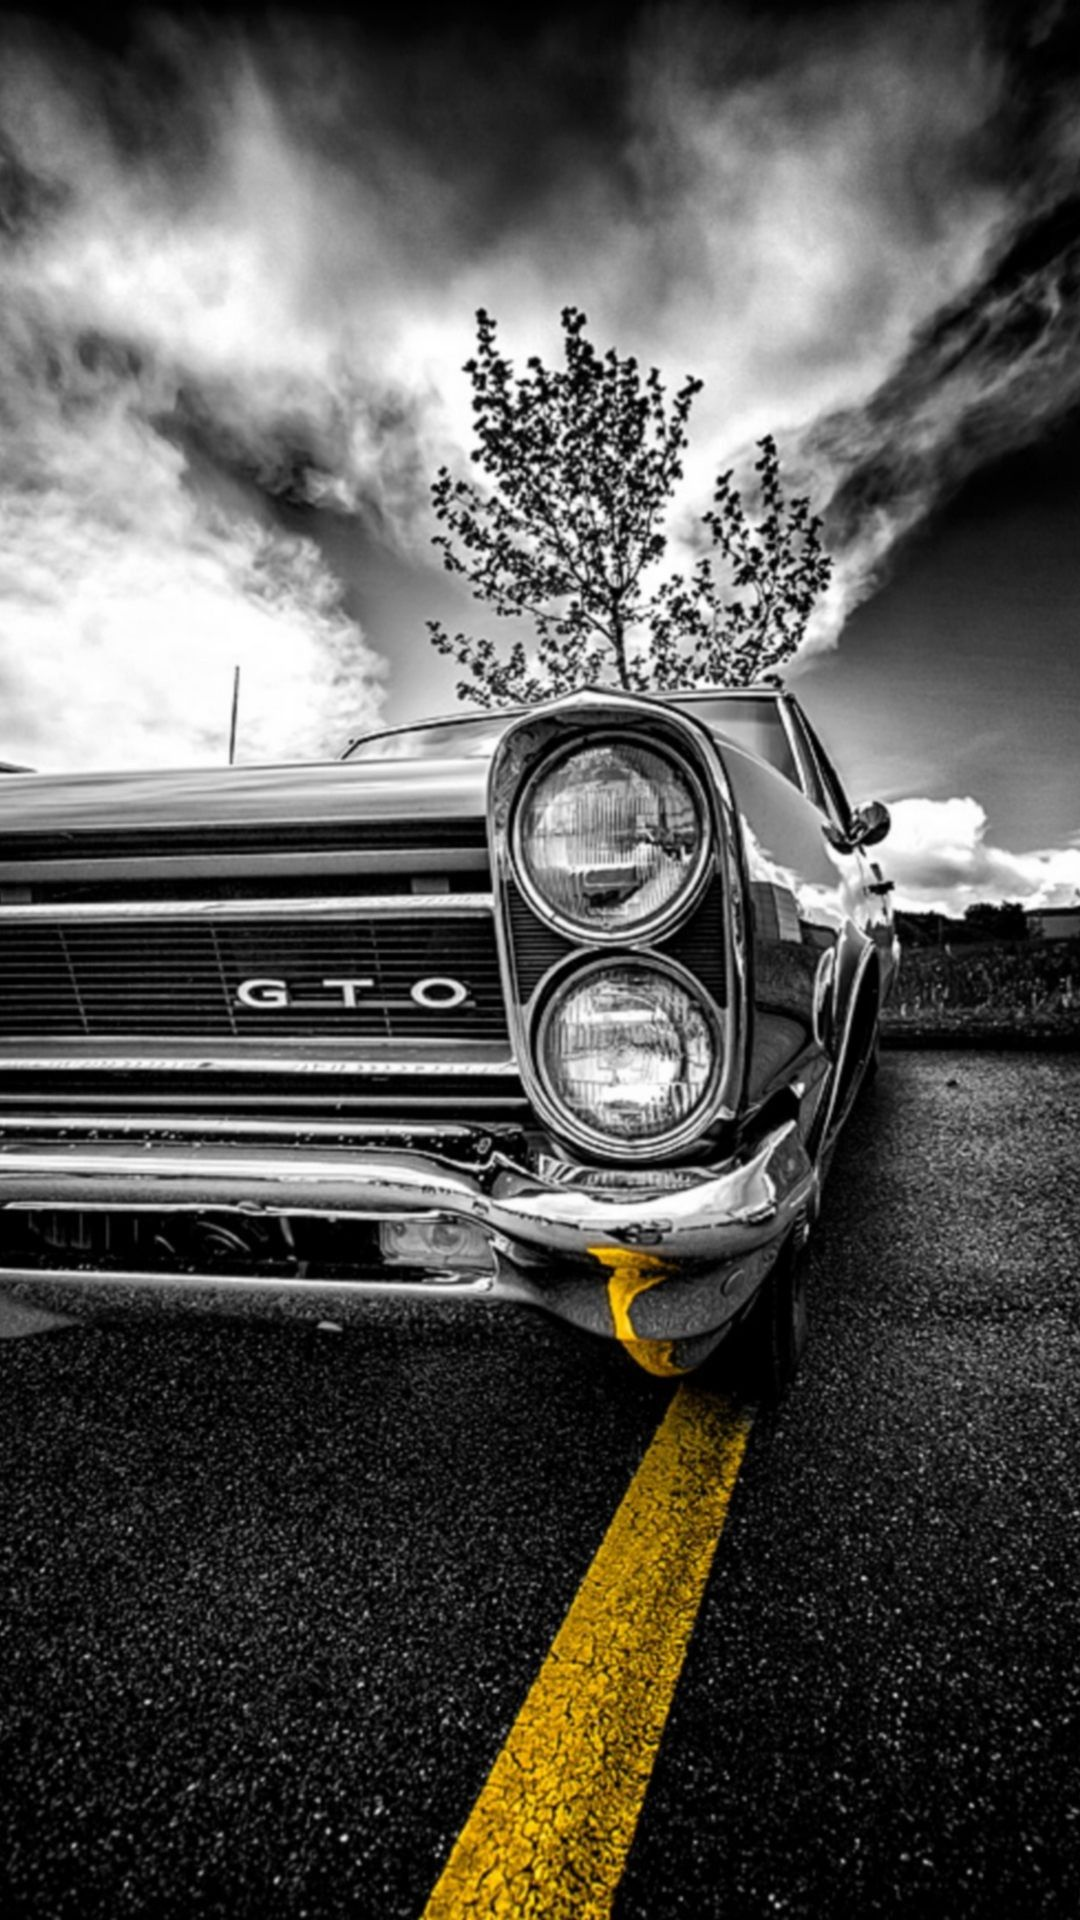 Iphone Ios 7 Wallpaper Tumblr For Ipad Cars And